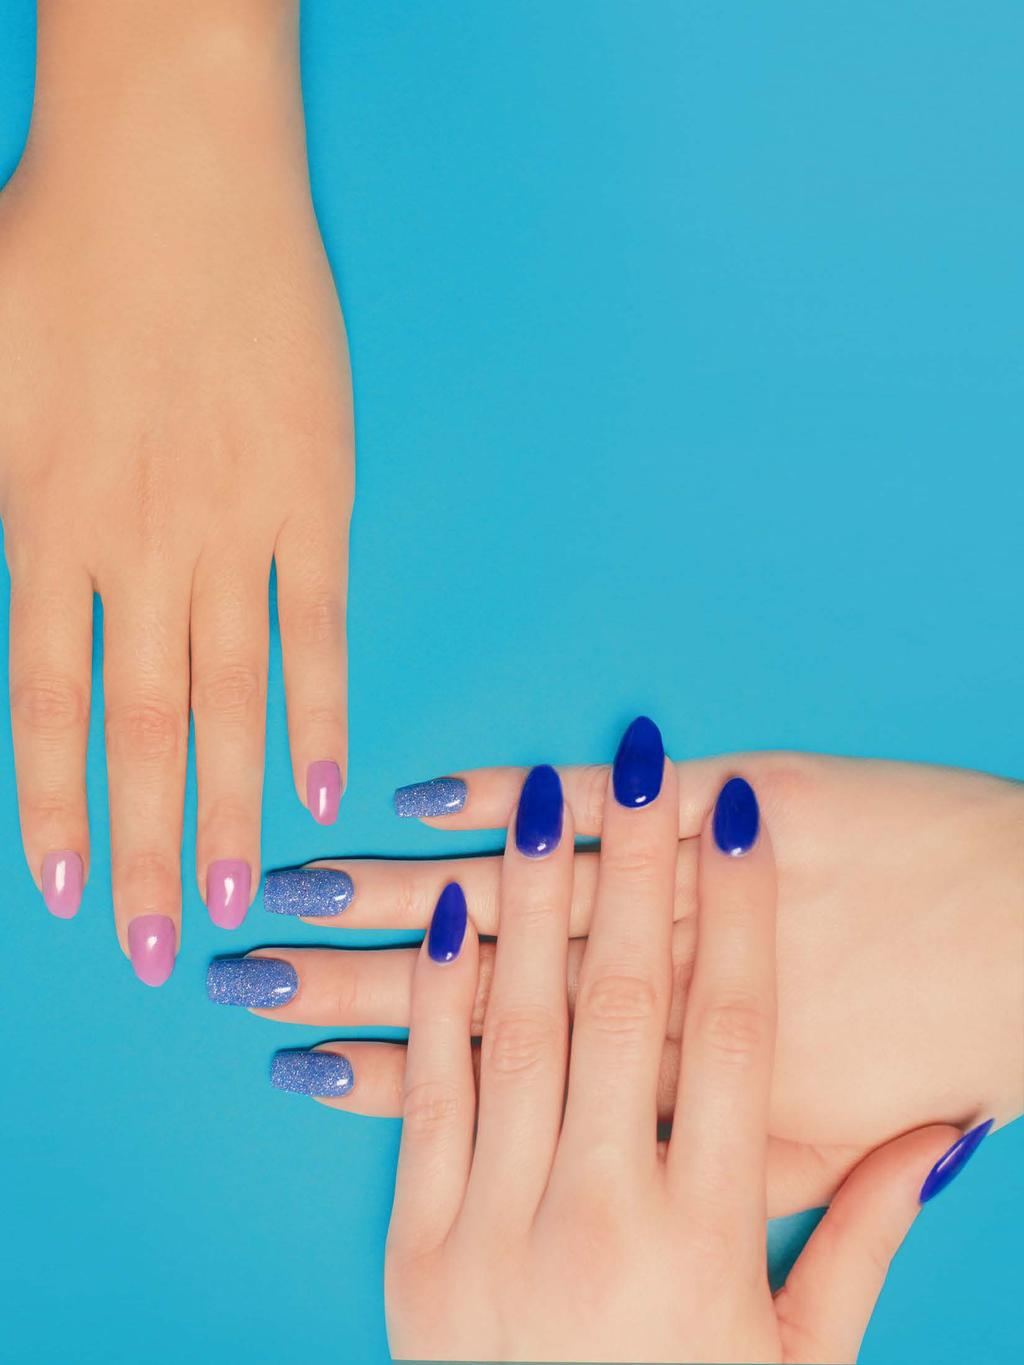 Acrylic Dipping System Coming July Brand New Trudip Shades Pdf Jafra Nourishing Hand Ampamp Nail Lotion Colored Dip Powders Now